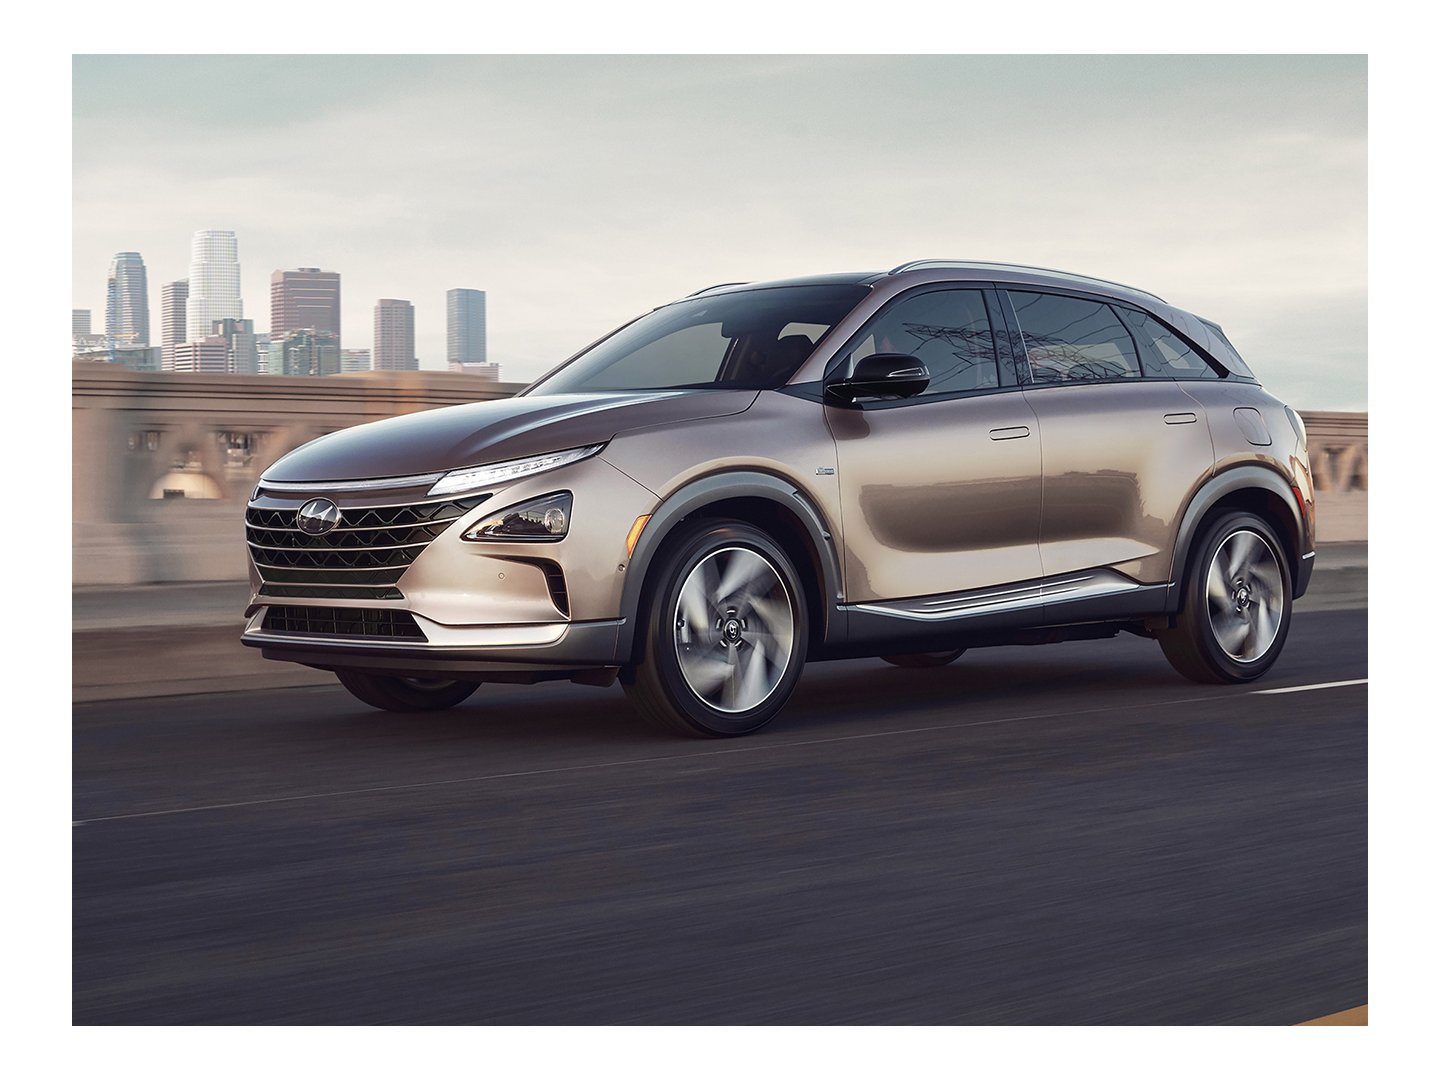 2020 Nexo Fuel Cell in Copper Metallic video frame